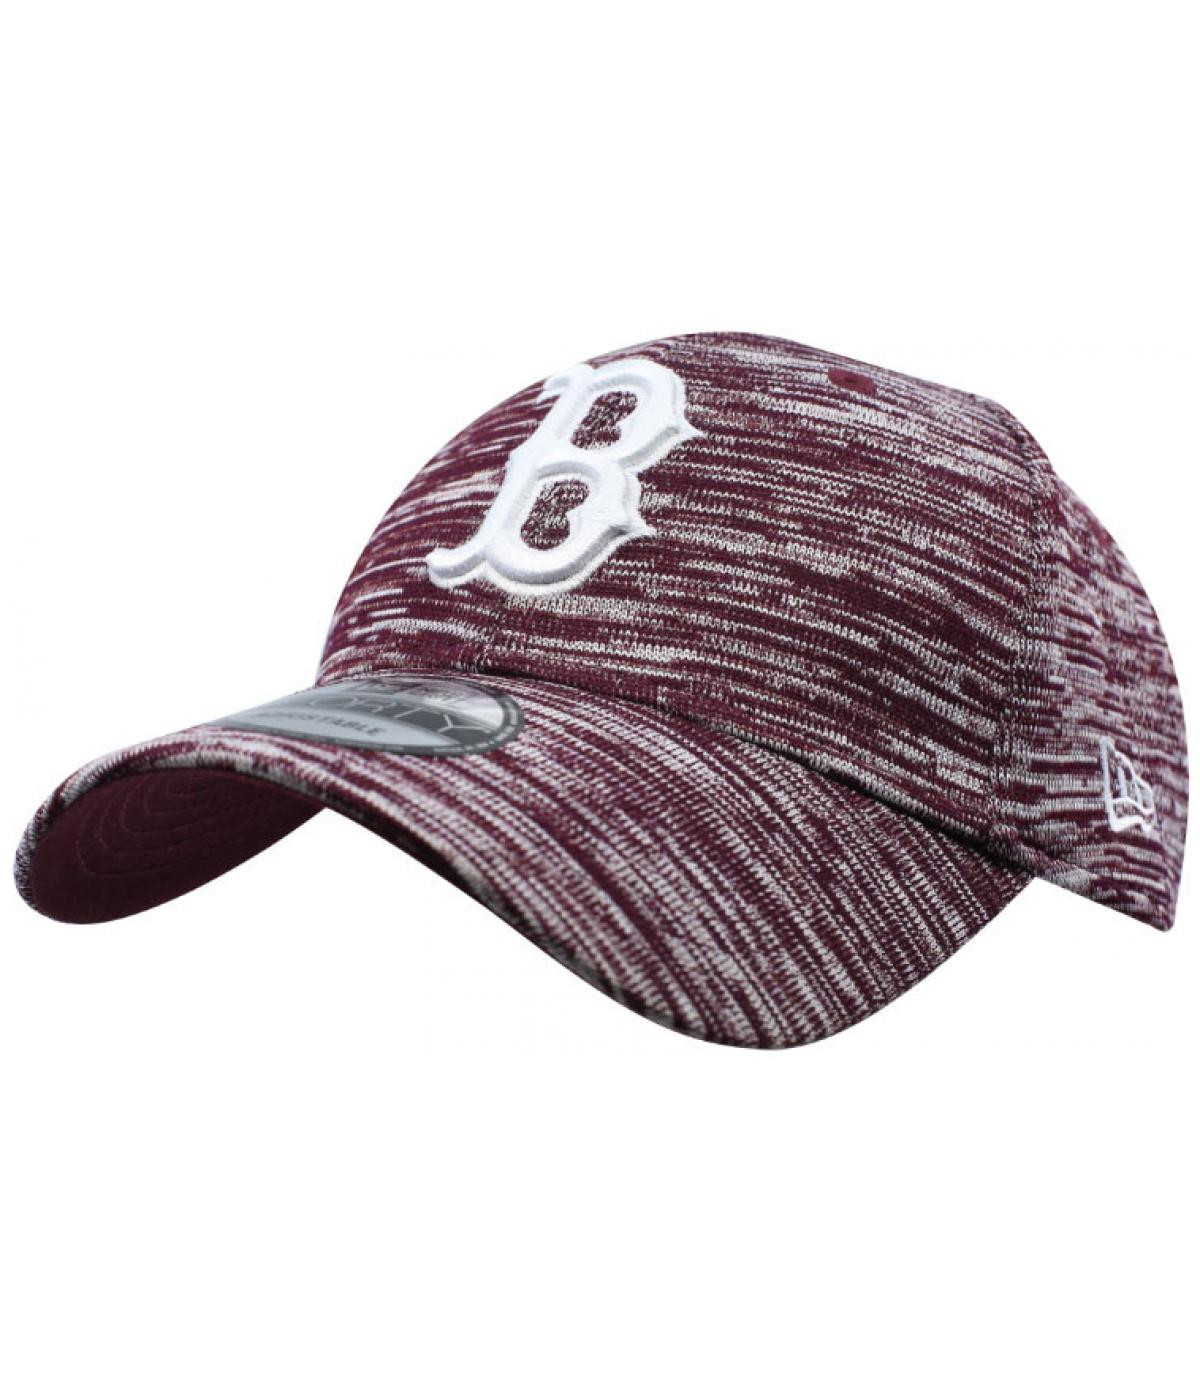 Détails Engineered Fit Boston 9Forty maroon - image 2